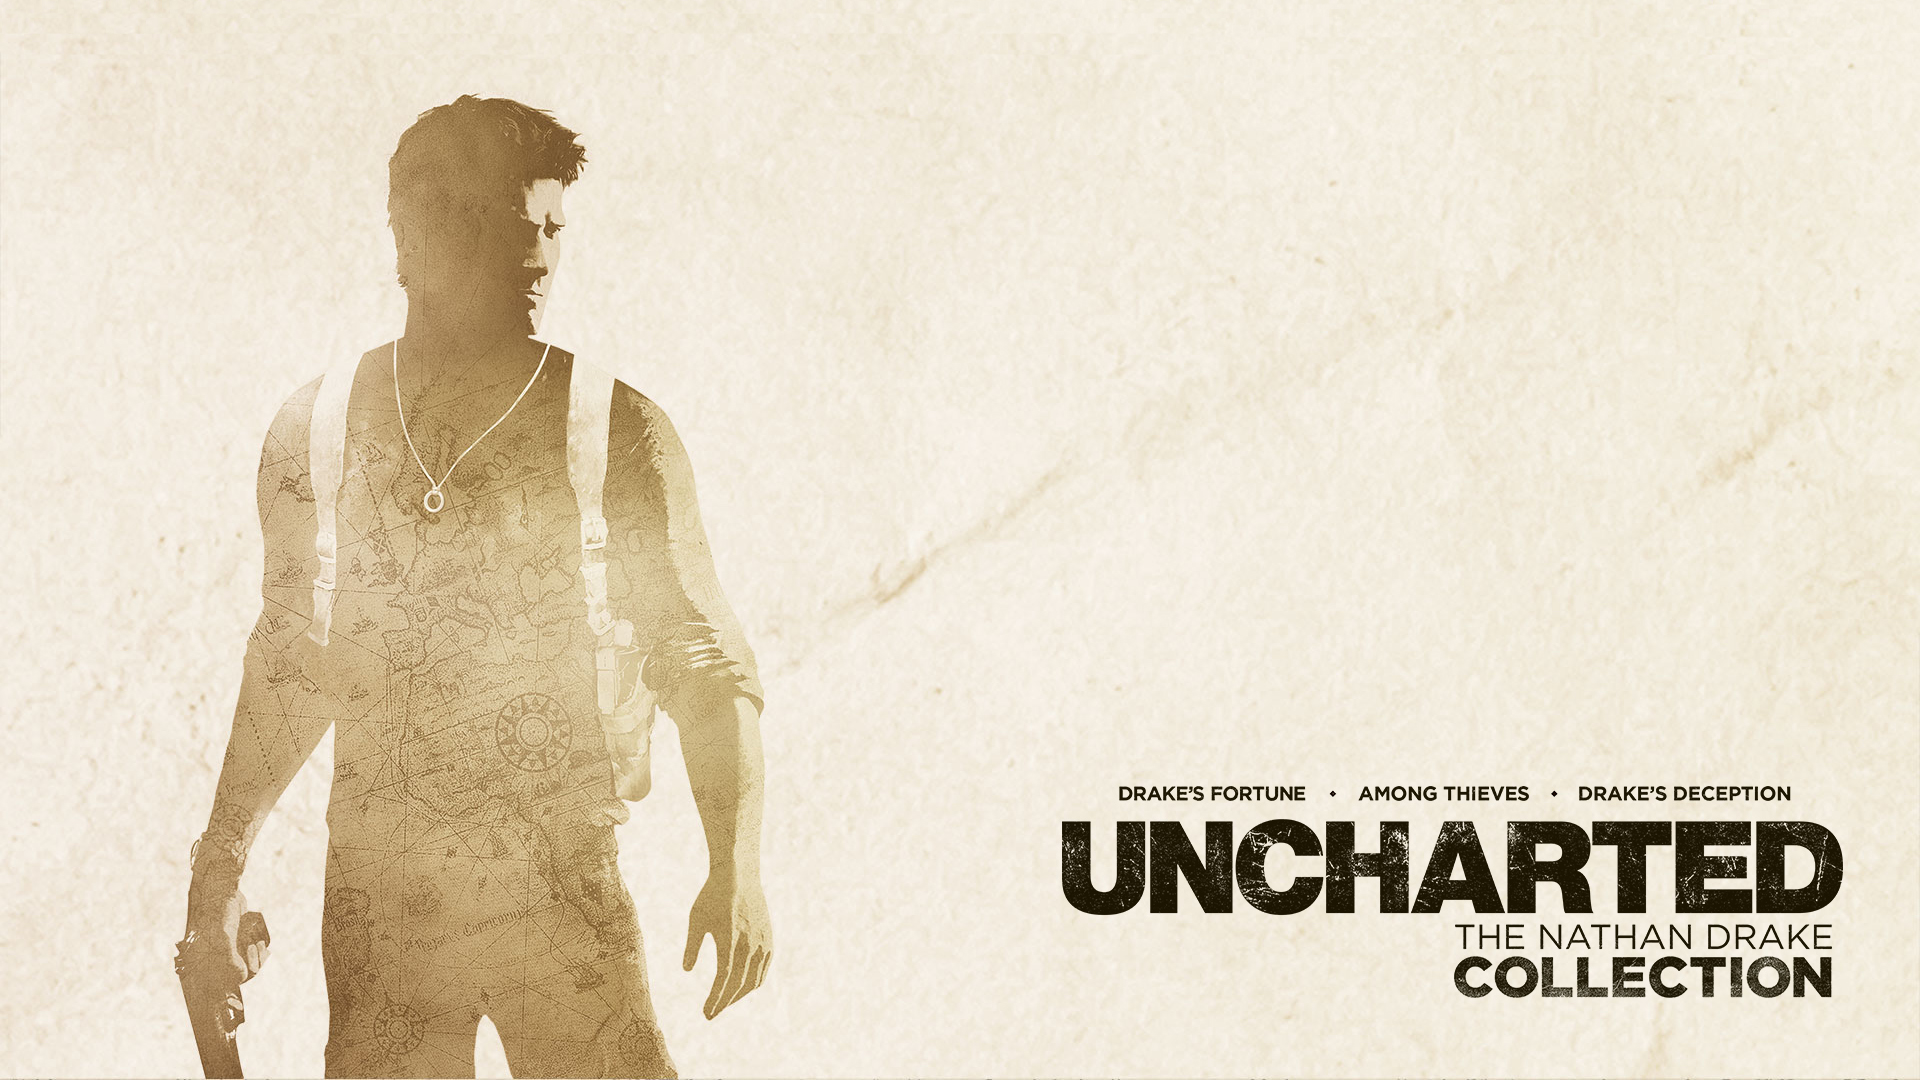 Uncharted The Nathan Drake Collection Playstation 4 Bundle